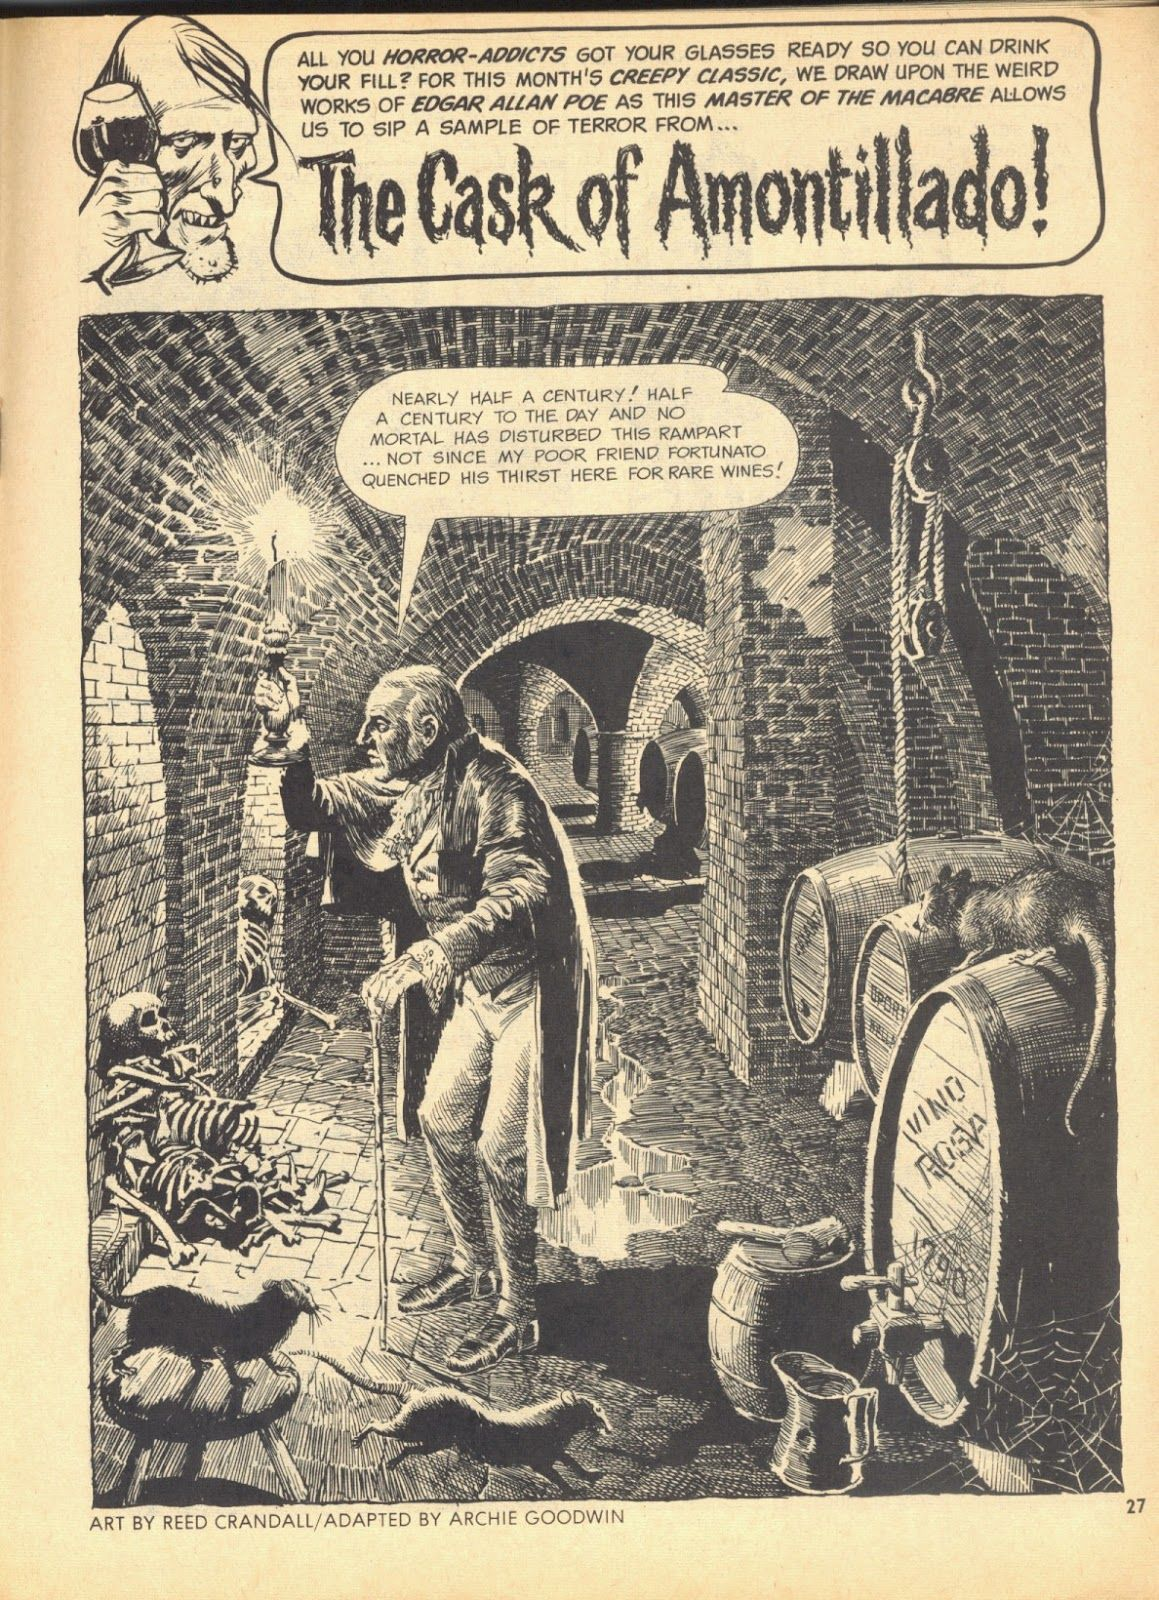 """Reed Crandall moody splash page from Edgar Alan Poe's """"The Cask of  Amontillado"""" in Creepy #6, which was later reprinted in Creepy #20 & #74."""